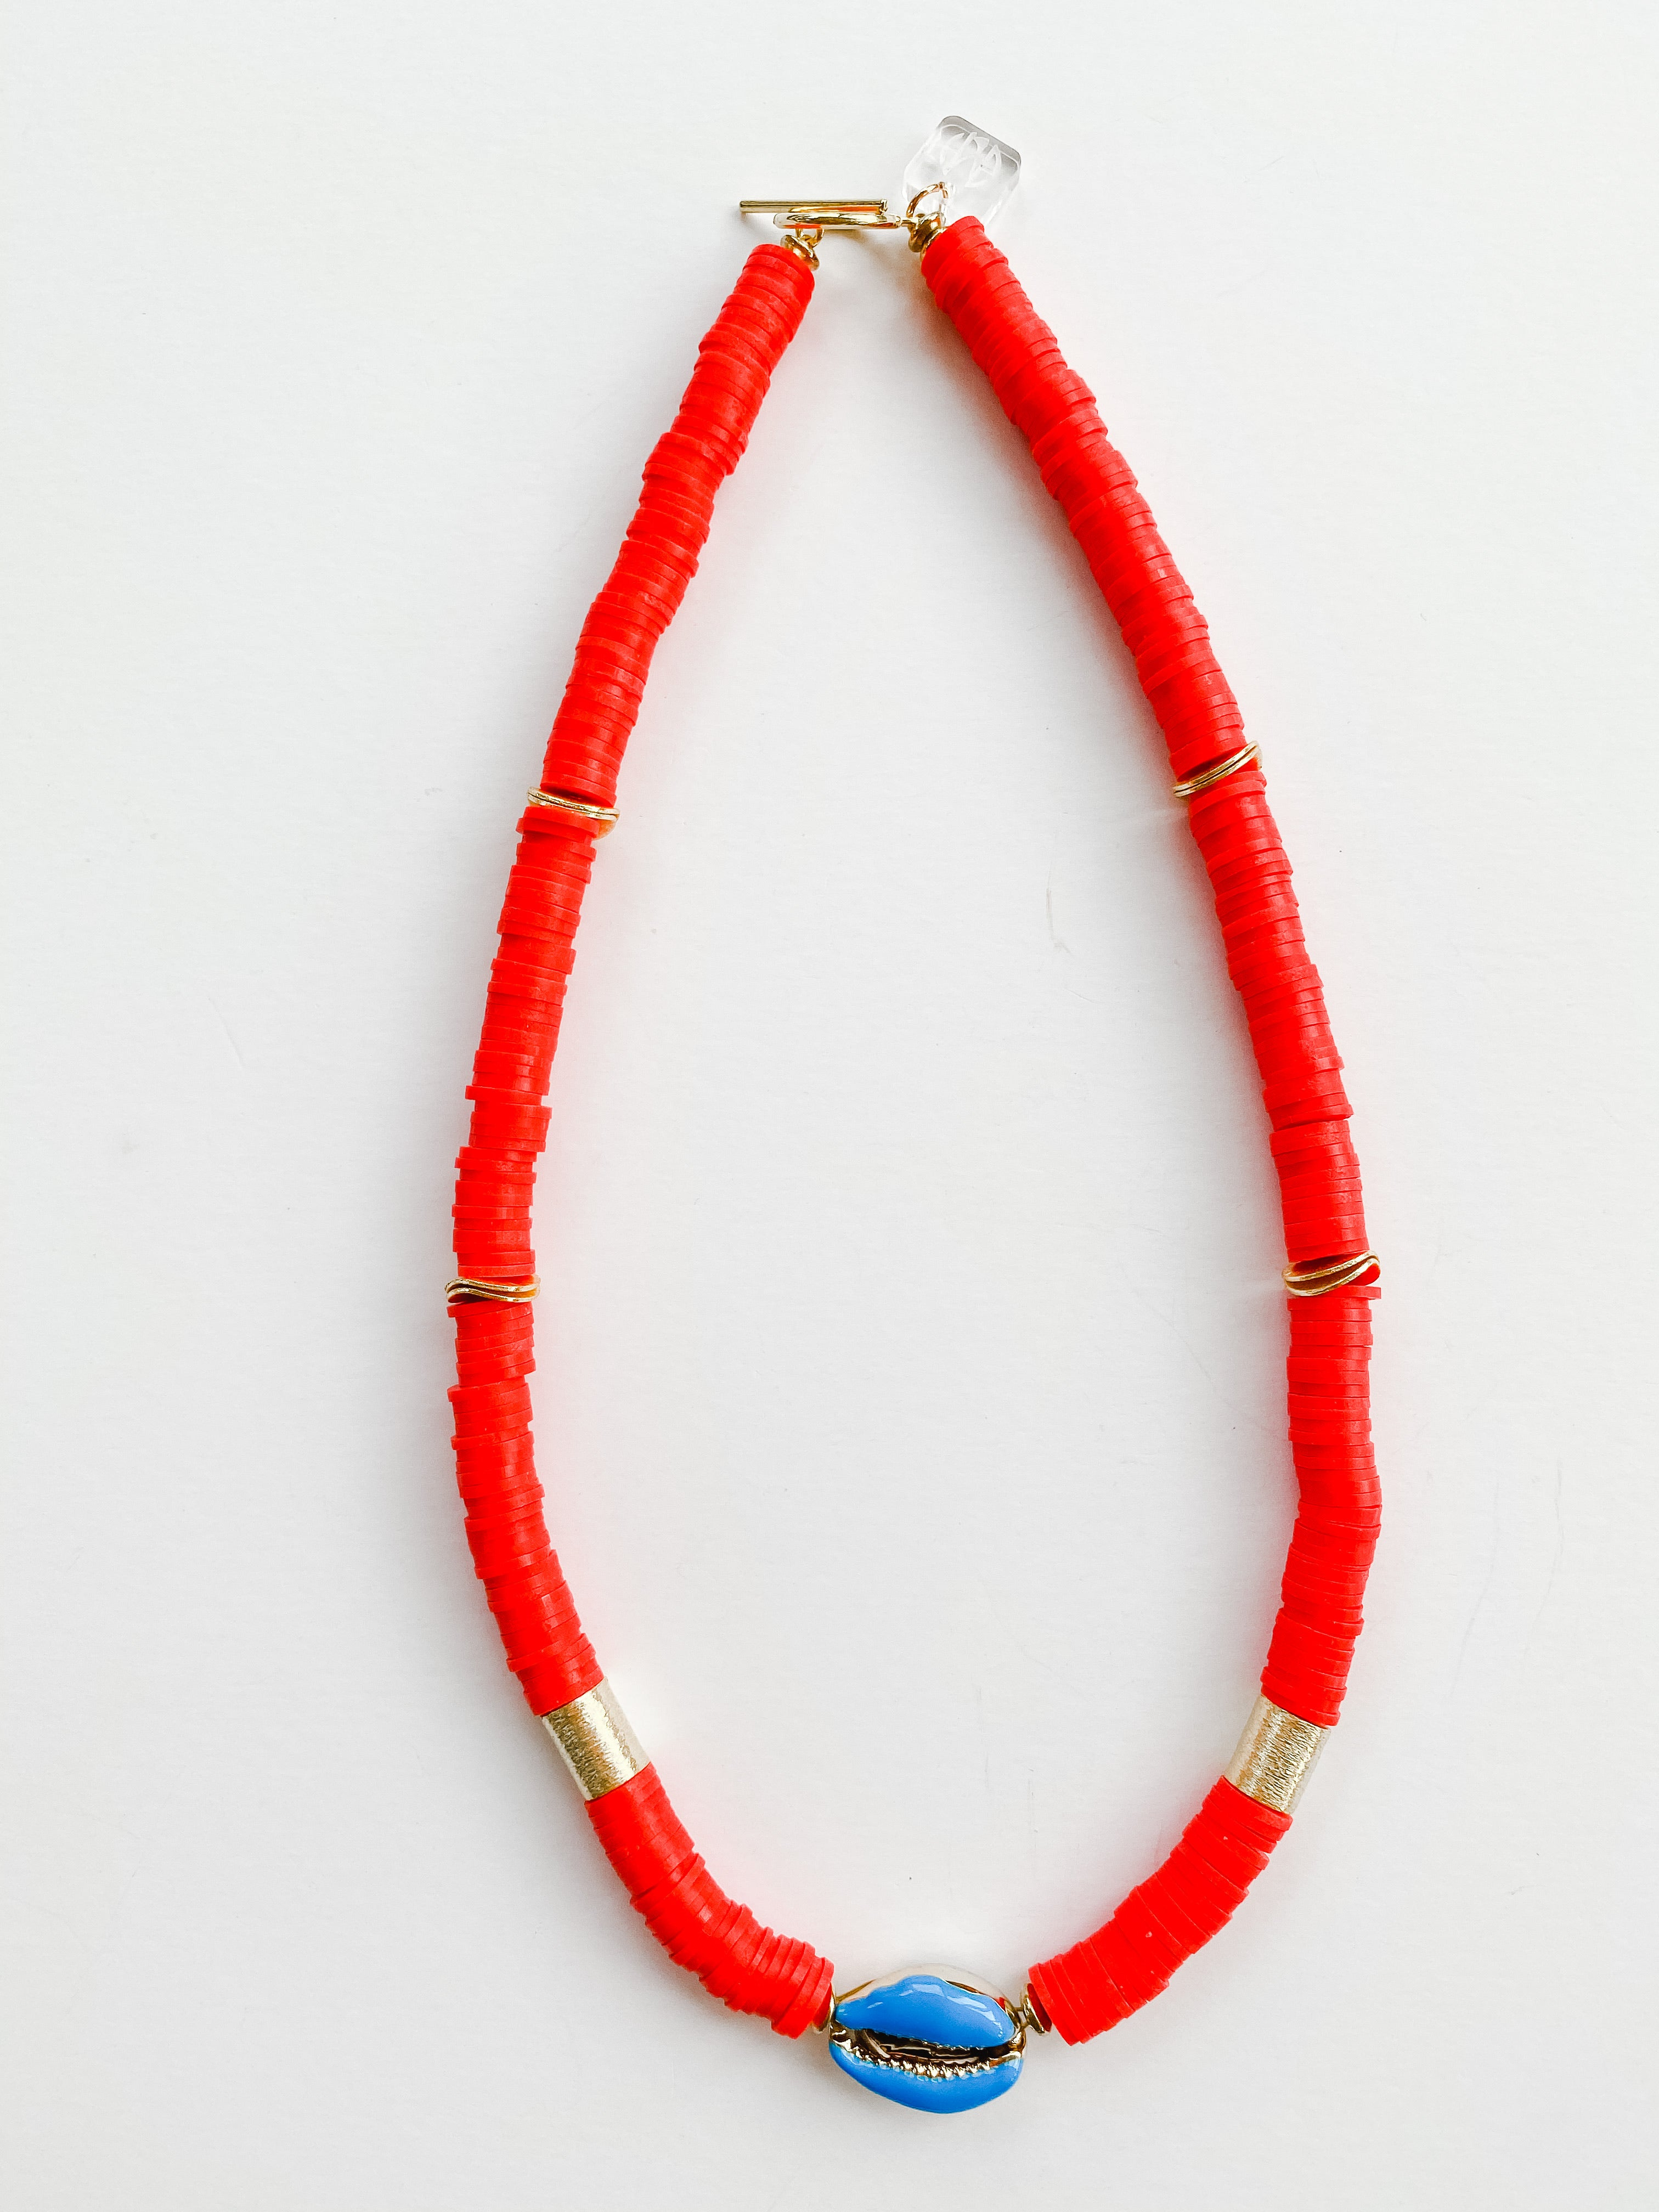 Summer Born to Be Wild Cowrie Necklace - Red + Blue Cowrie